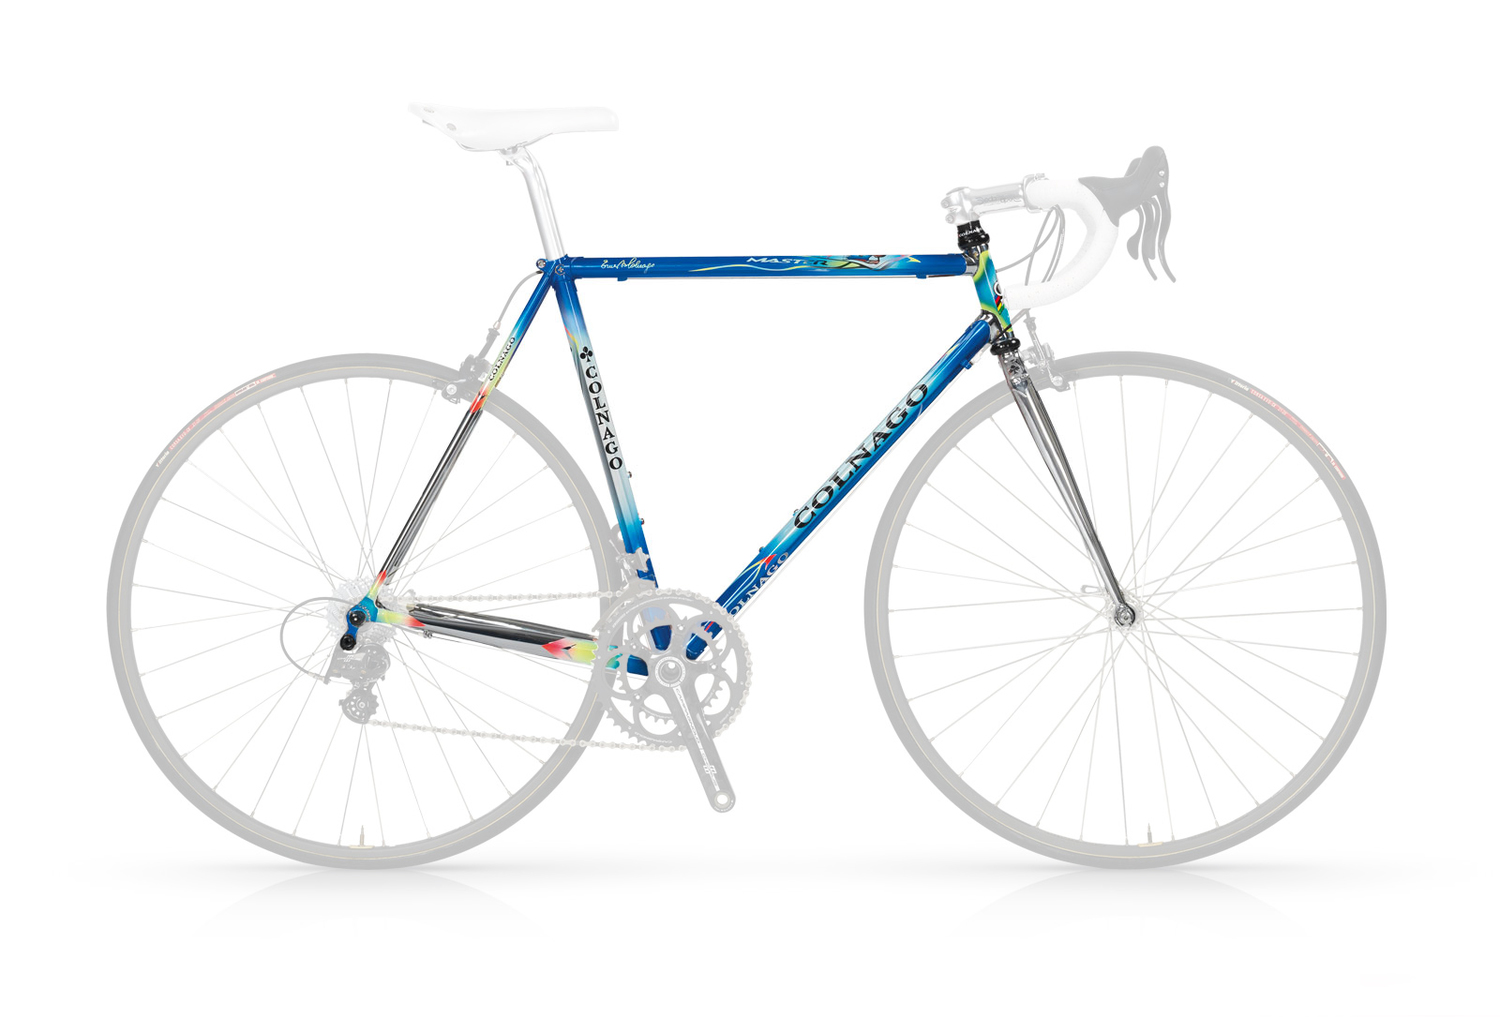 Colnago Master X Light Steel Road Bicycle Cicli Corsa Classico